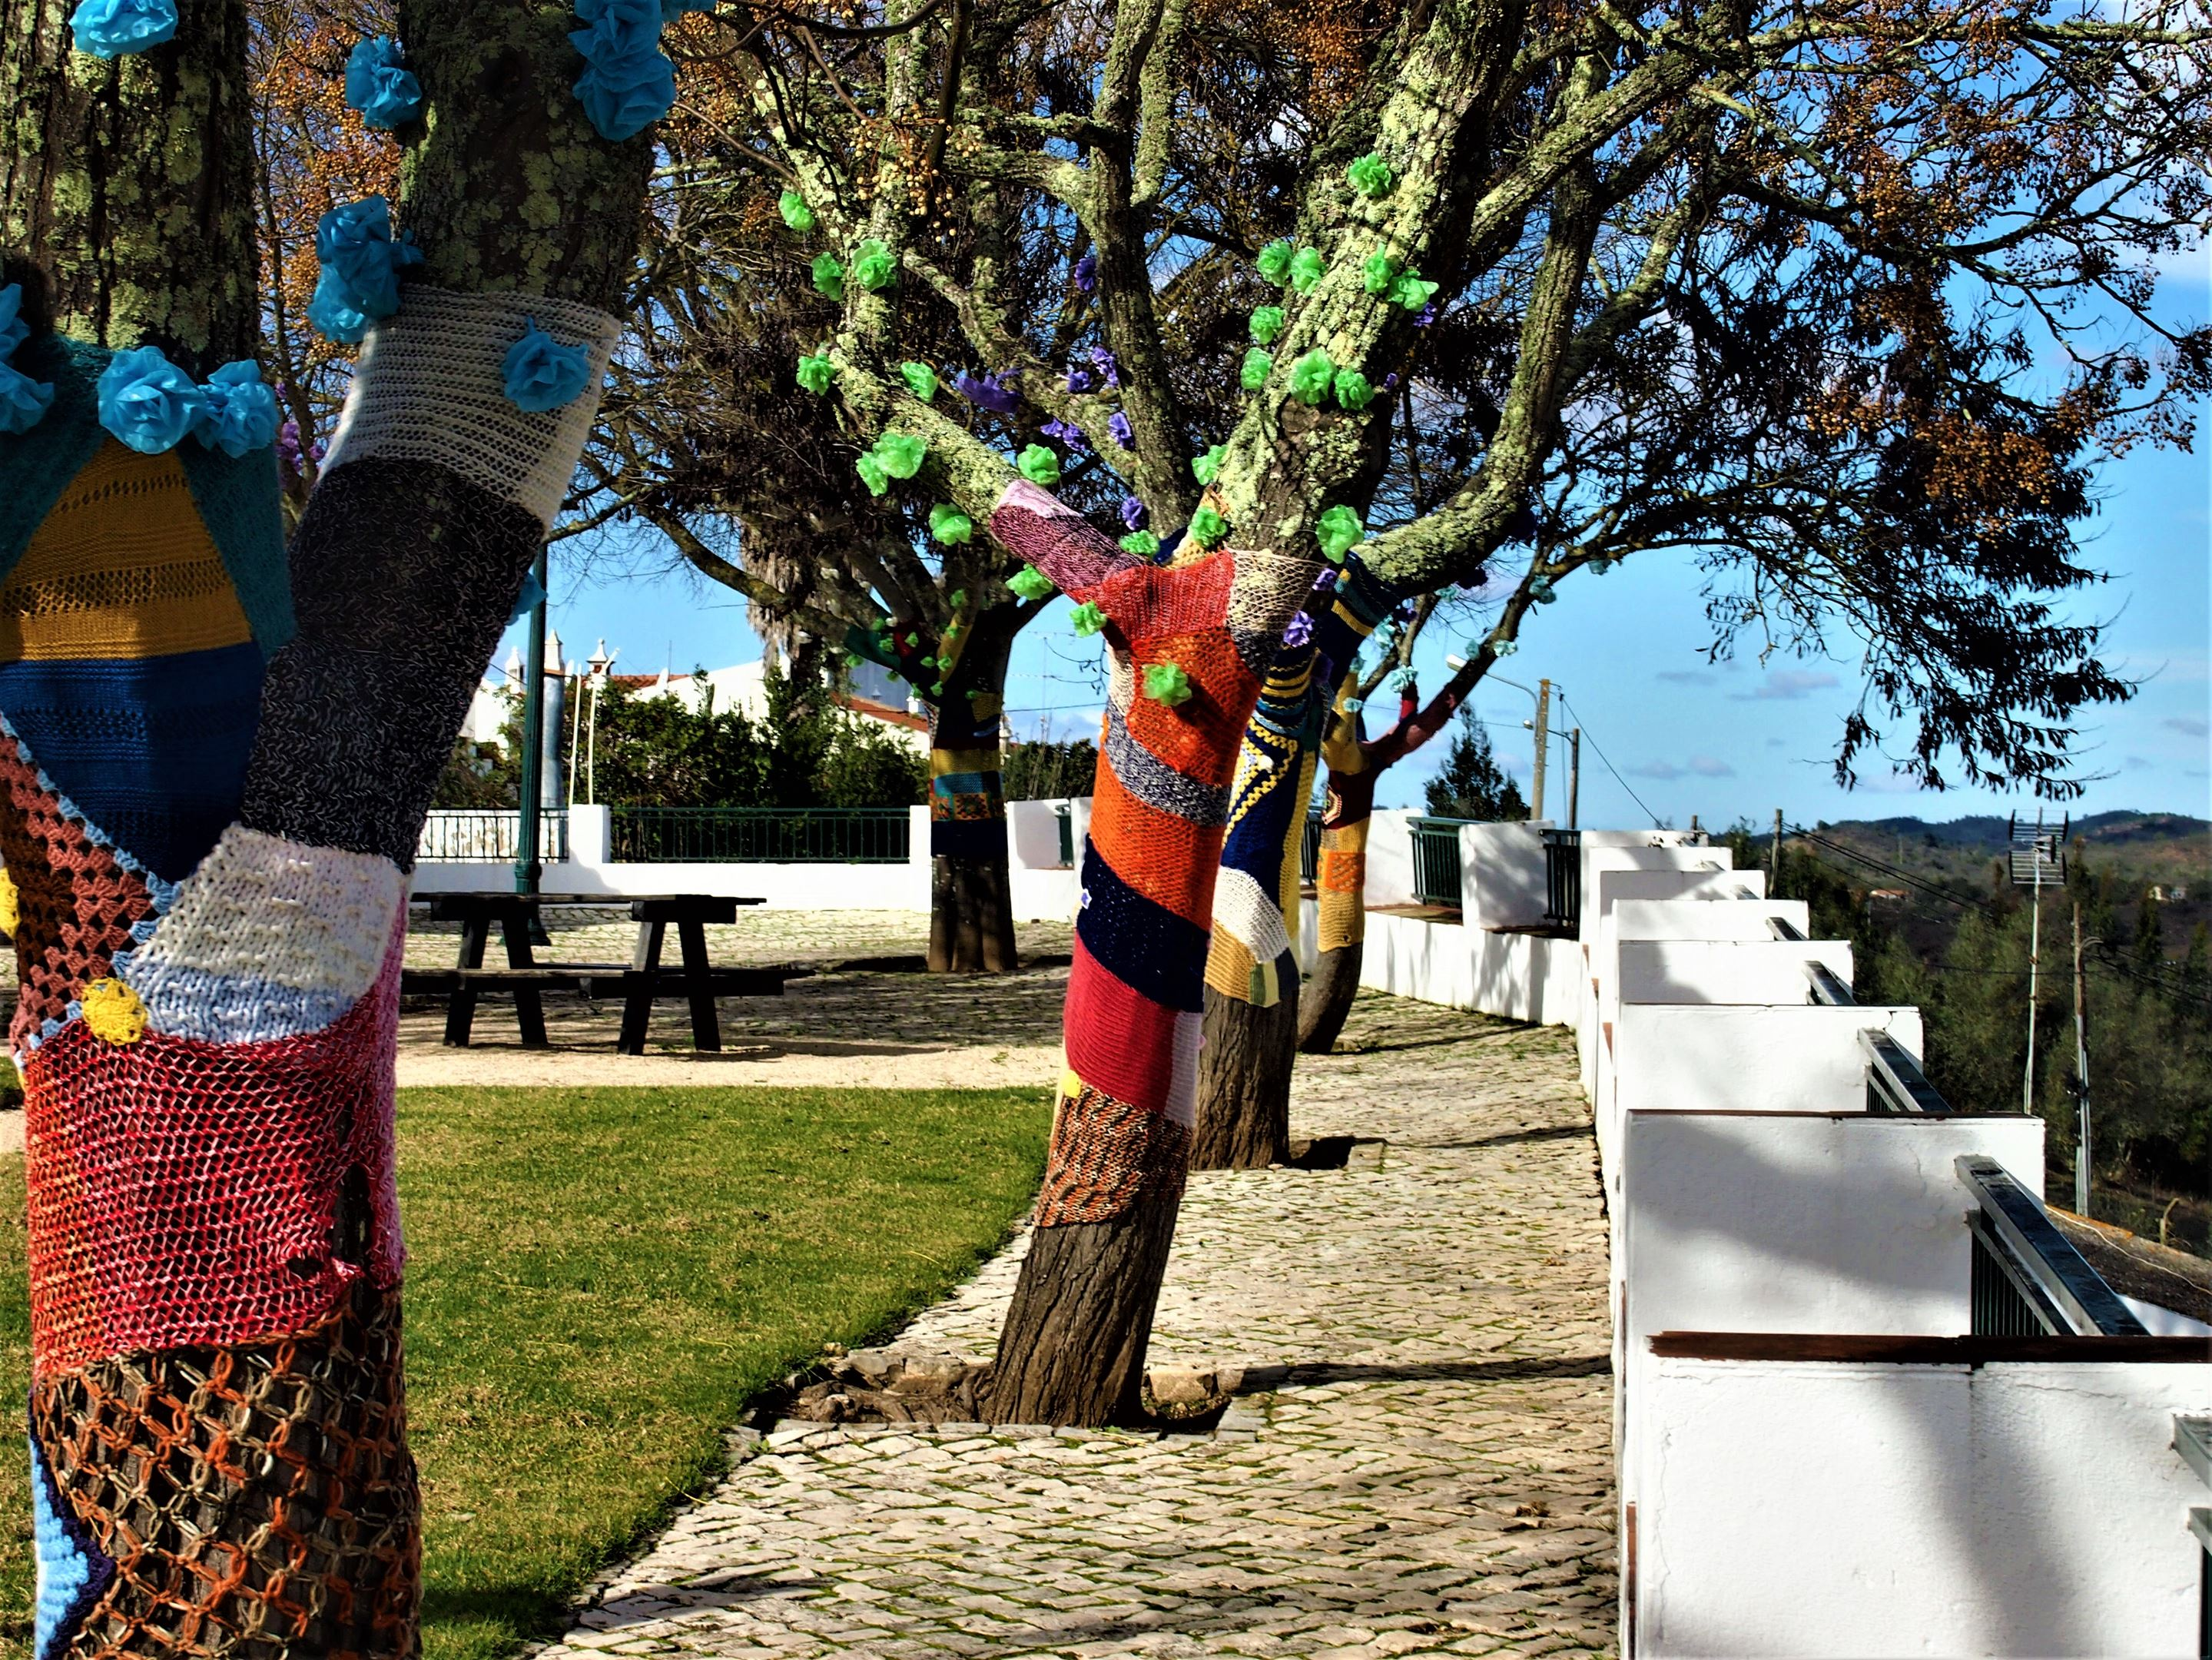 São Marcos da Serra- tress decorated in the main square